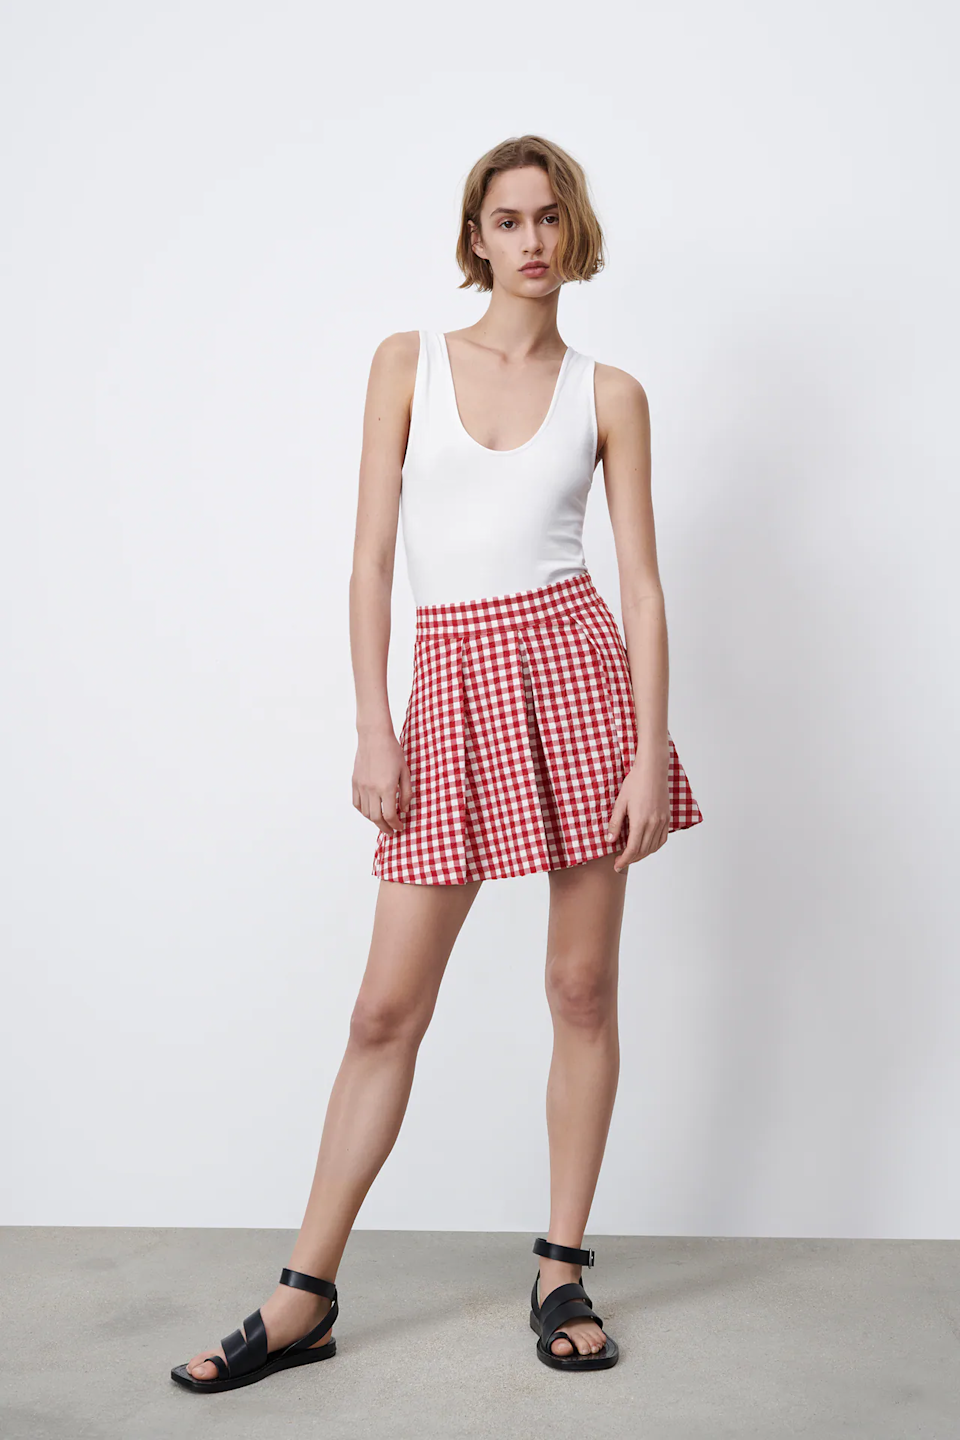 """<br><br><strong>Zara</strong> PLEATED GINGHAM SHORTS, $, available at <a href=""""https://go.skimresources.com/?id=30283X879131&url=https%3A%2F%2Fwww.zara.com%2Fus%2Fen%2Fpleated-gingham-shorts-p01165091.html"""" rel=""""nofollow noopener"""" target=""""_blank"""" data-ylk=""""slk:Zara"""" class=""""link rapid-noclick-resp"""">Zara</a>"""